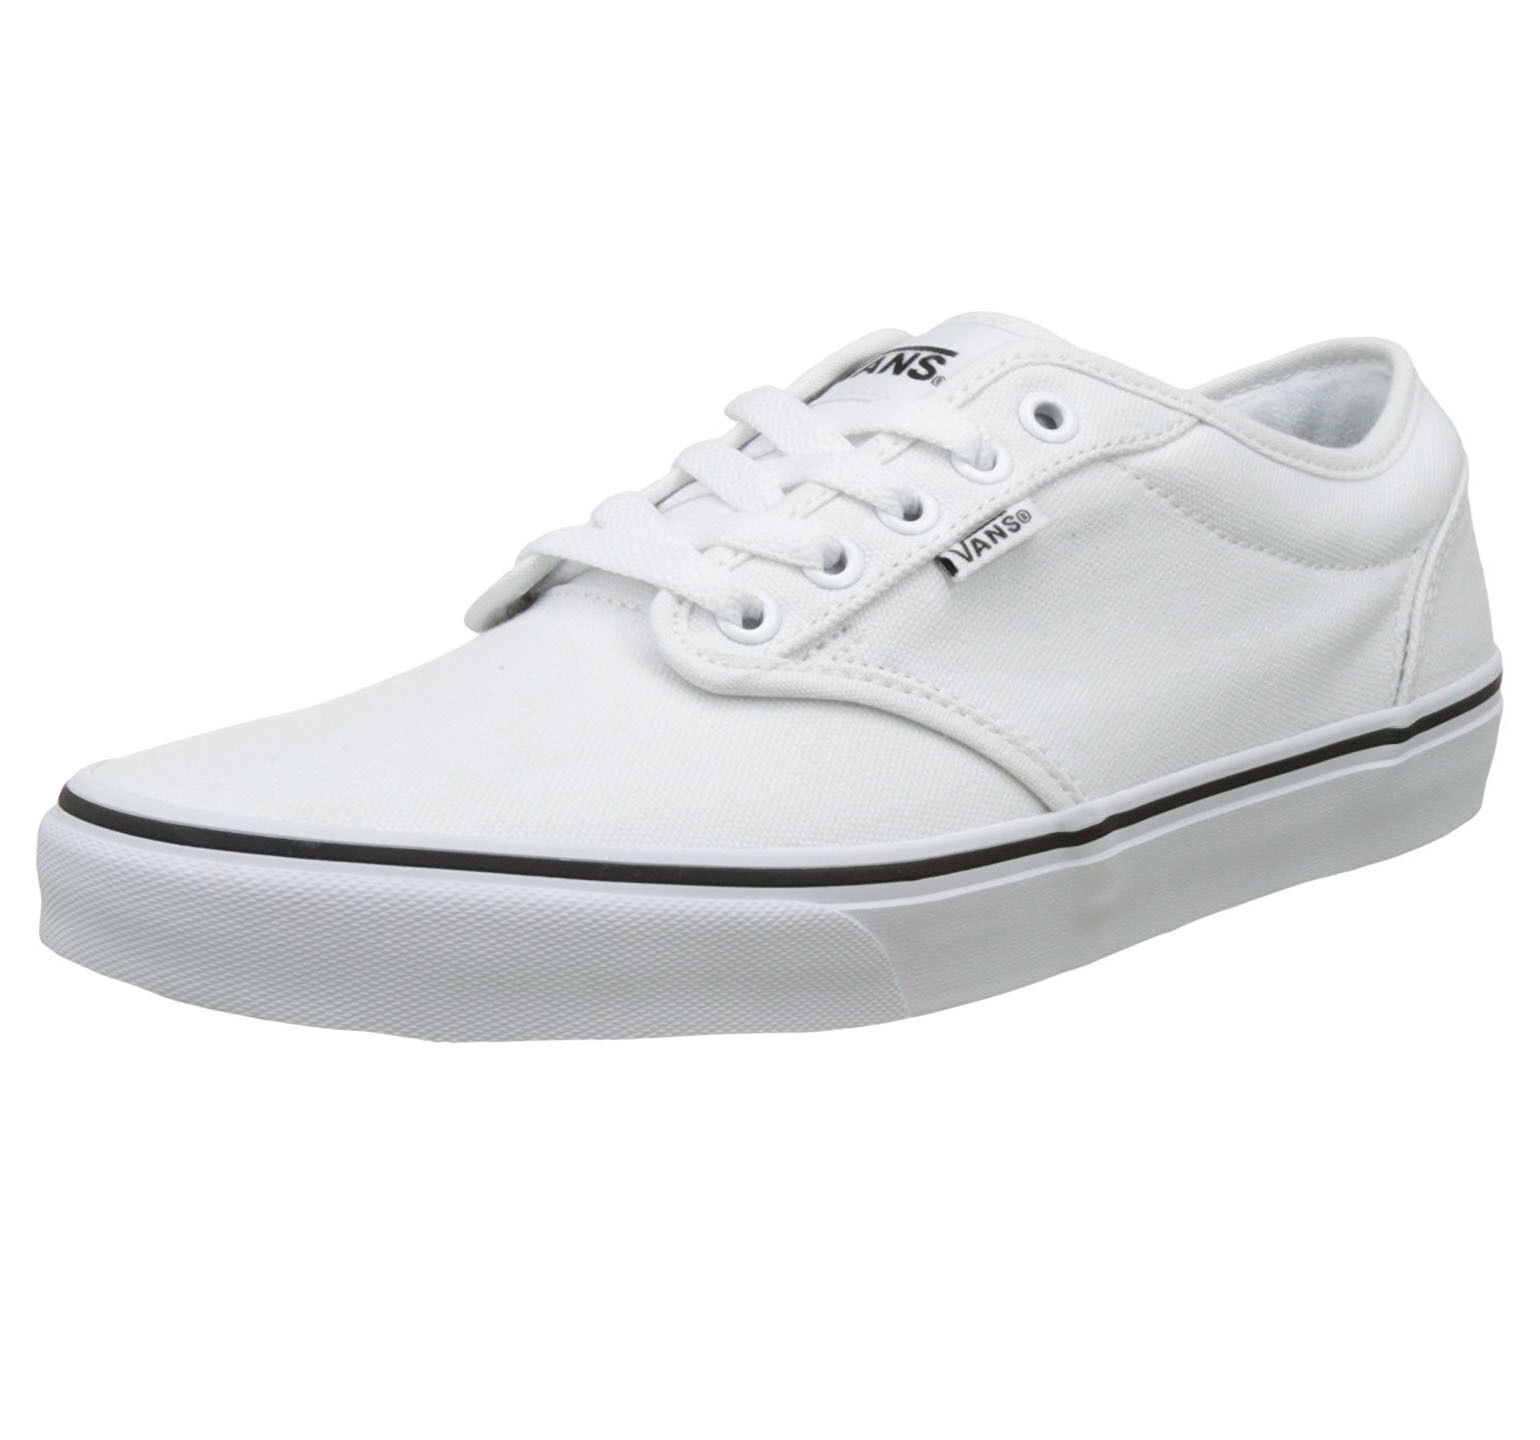 VANS Atwood Mens Canvas Skater Trainers Foxing Shoes Lace Up Plimsolls White